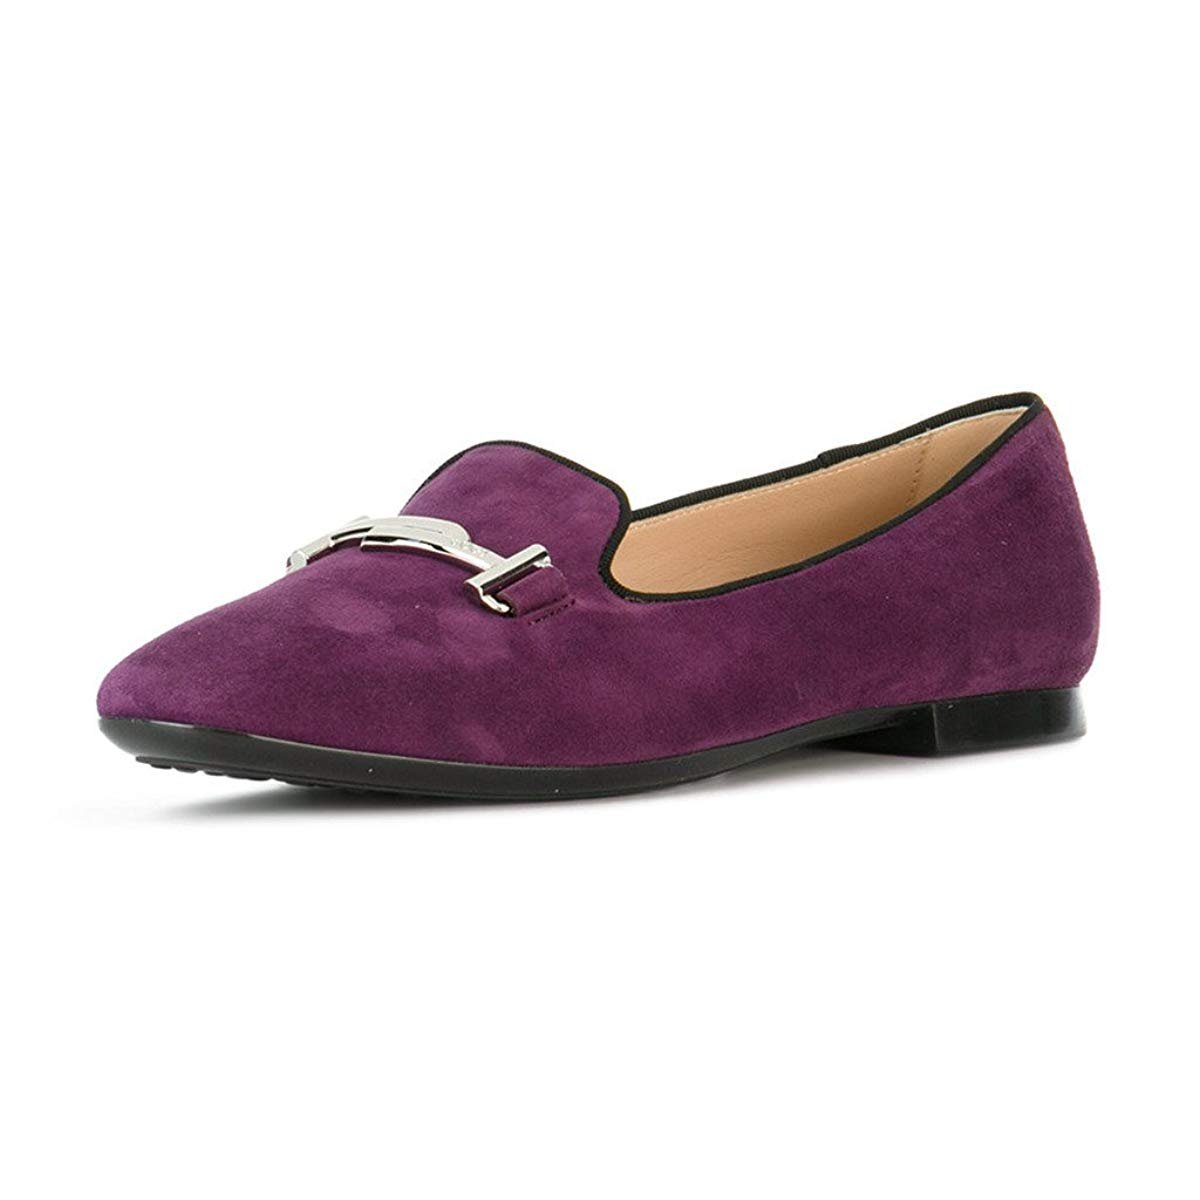 XYD Comfortable Low Heel Slip On Suede Flats Pointed Toe Ballet Loafer Dress Shoes for Women B075SDPQ54 15 B(M) US|Dark Purple